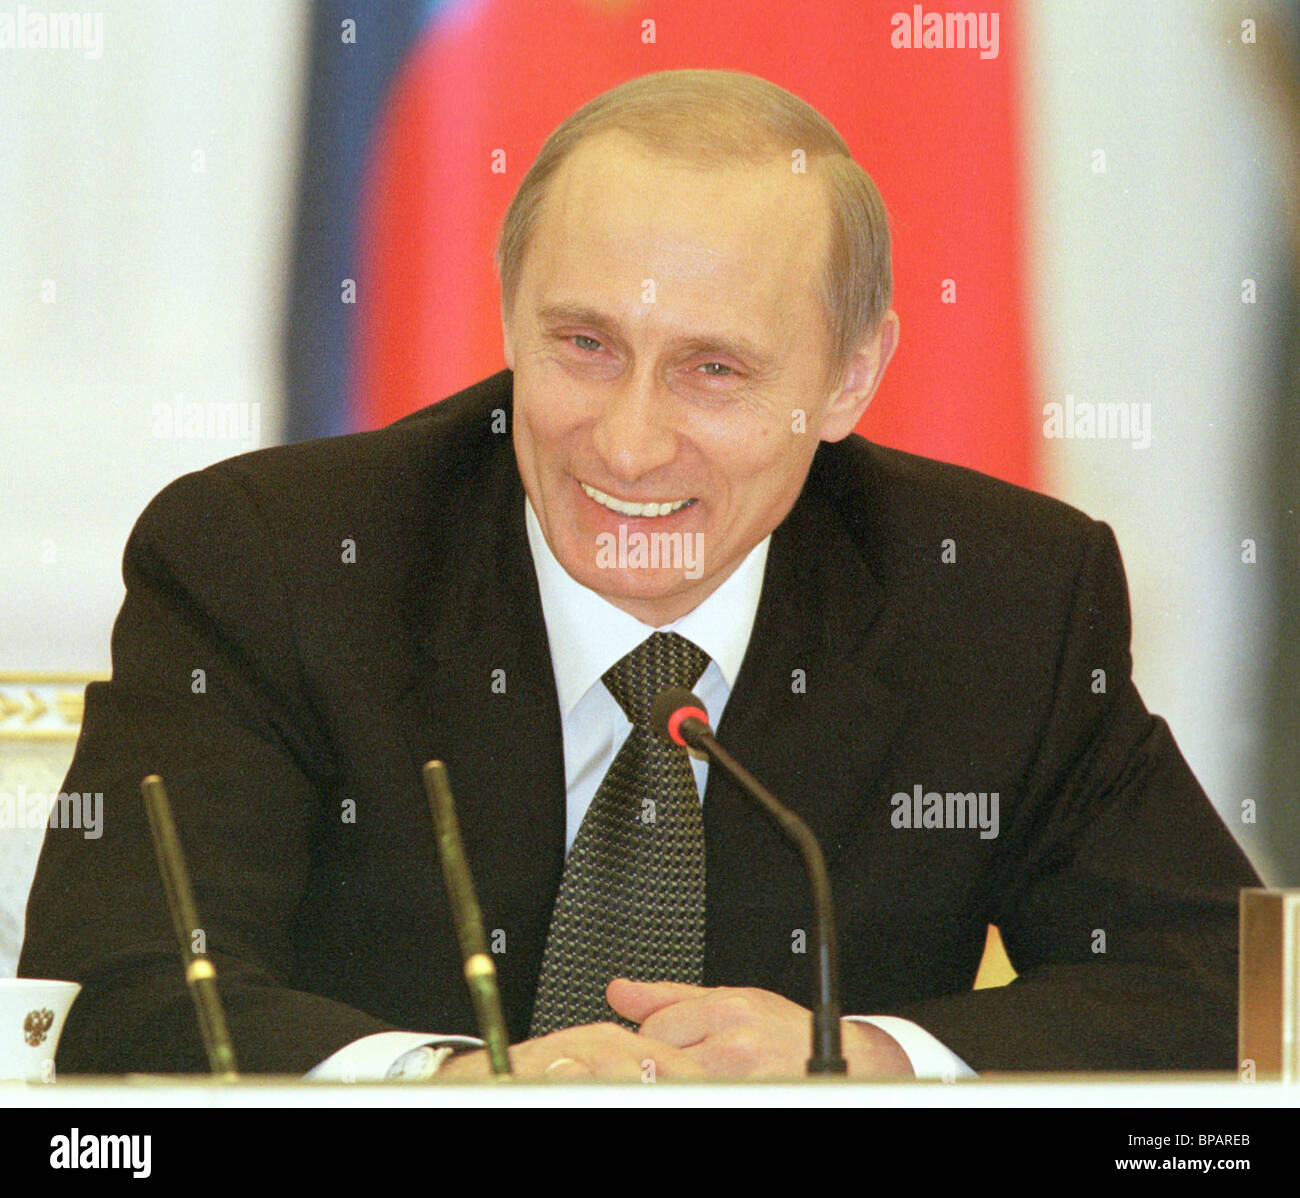 Vladimir Putin at the meeting of the Council for culture and arts. - Stock Image